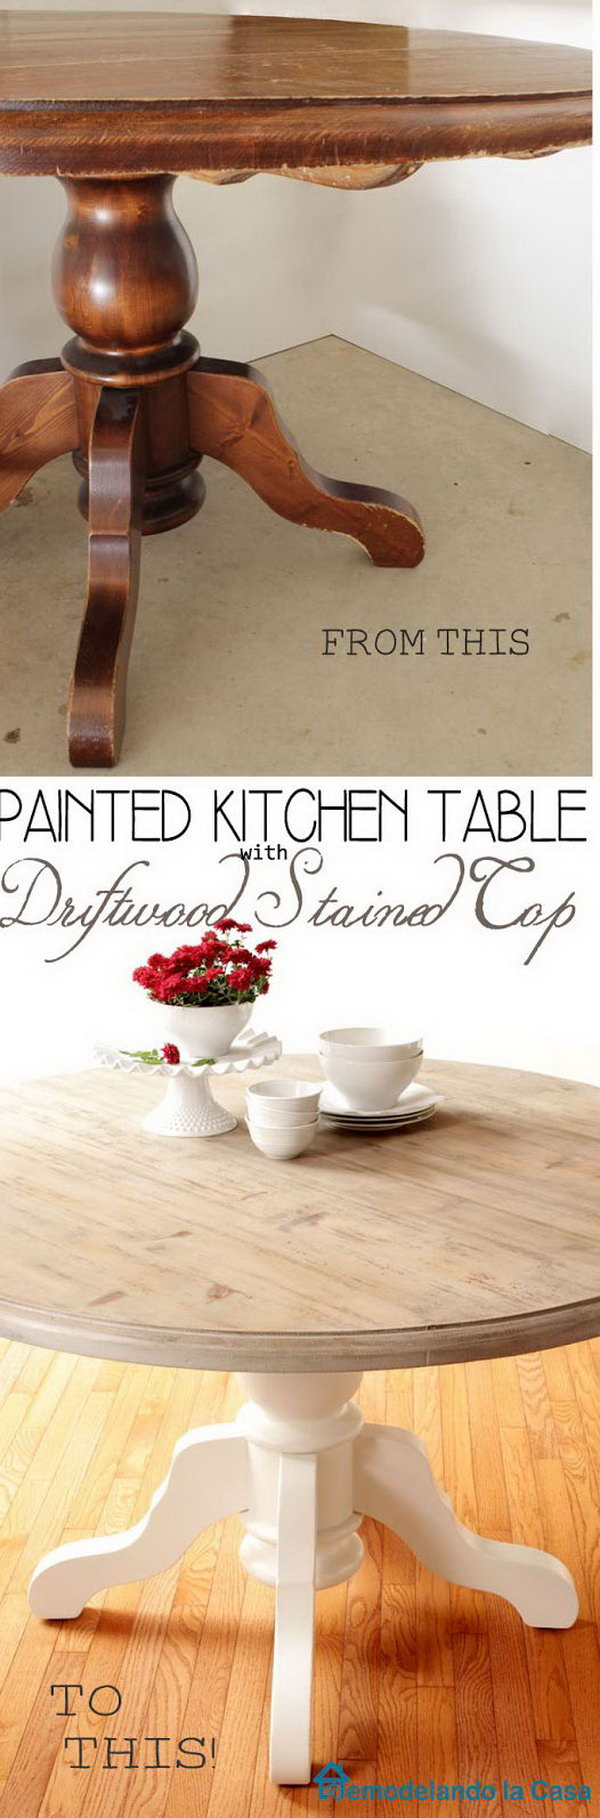 39 Kitchen Table Makeover